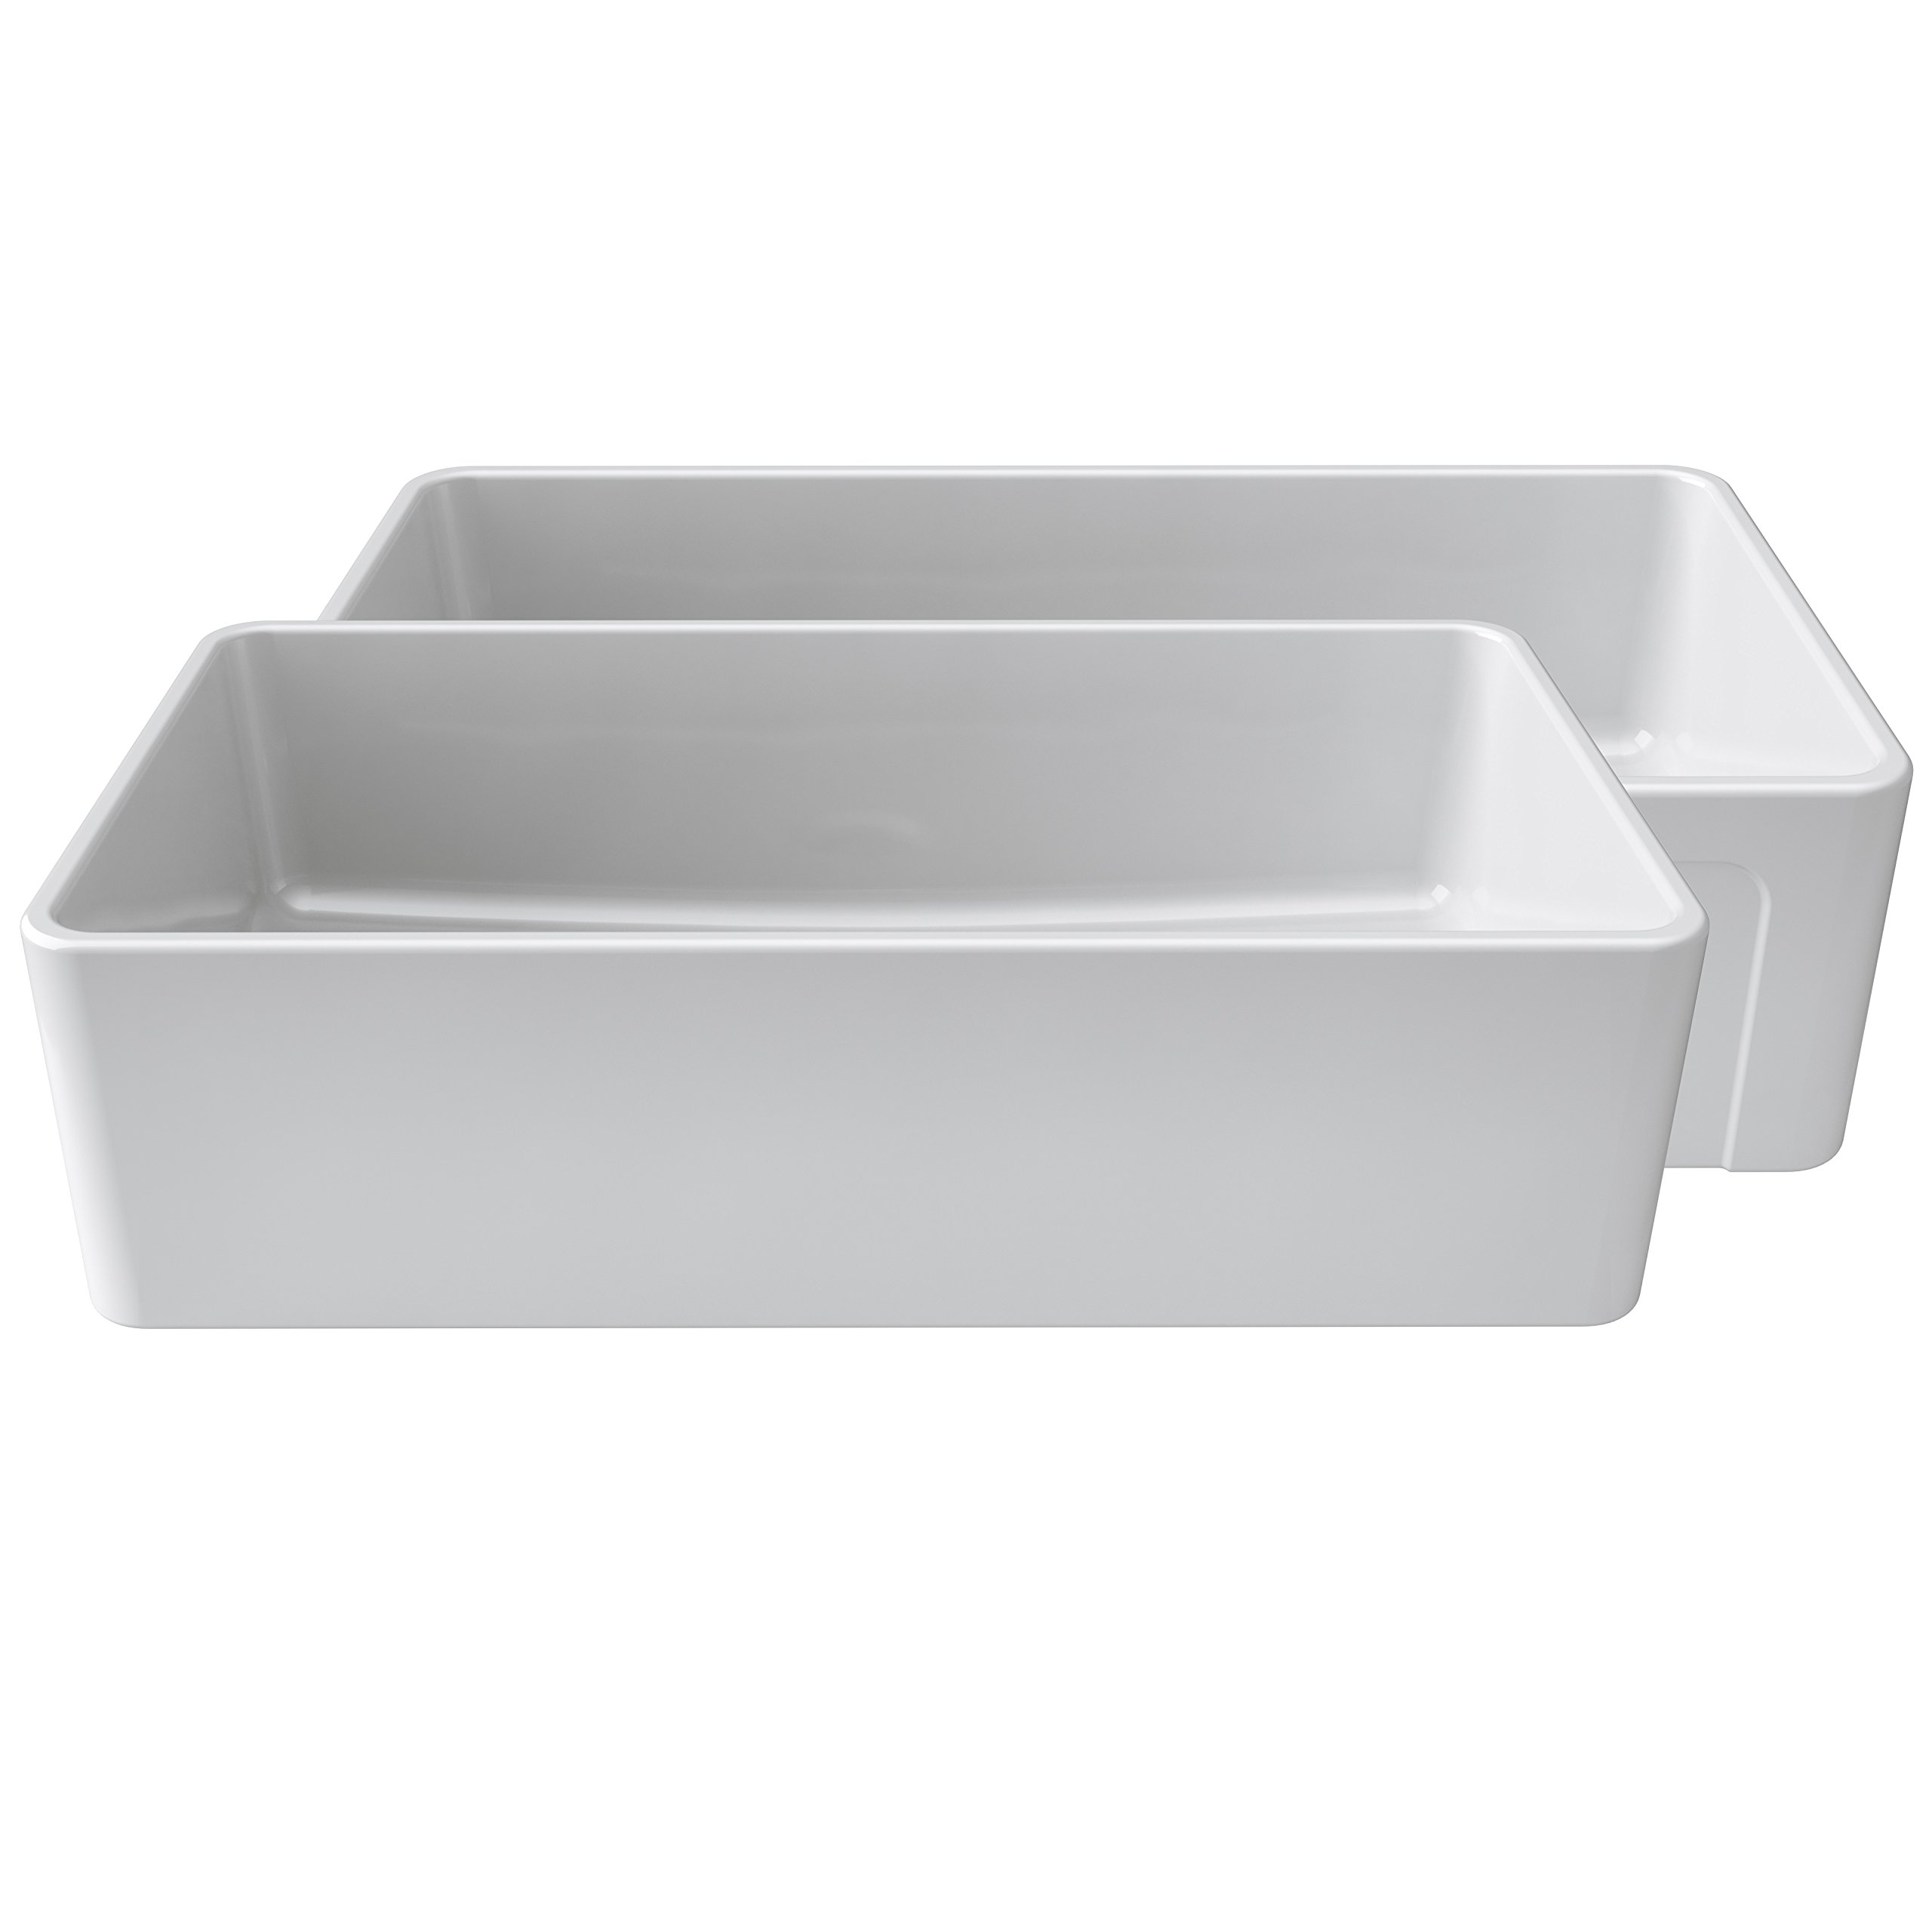 LaToscana LTW3619W 36-in Fireclay Sink by La Toscana